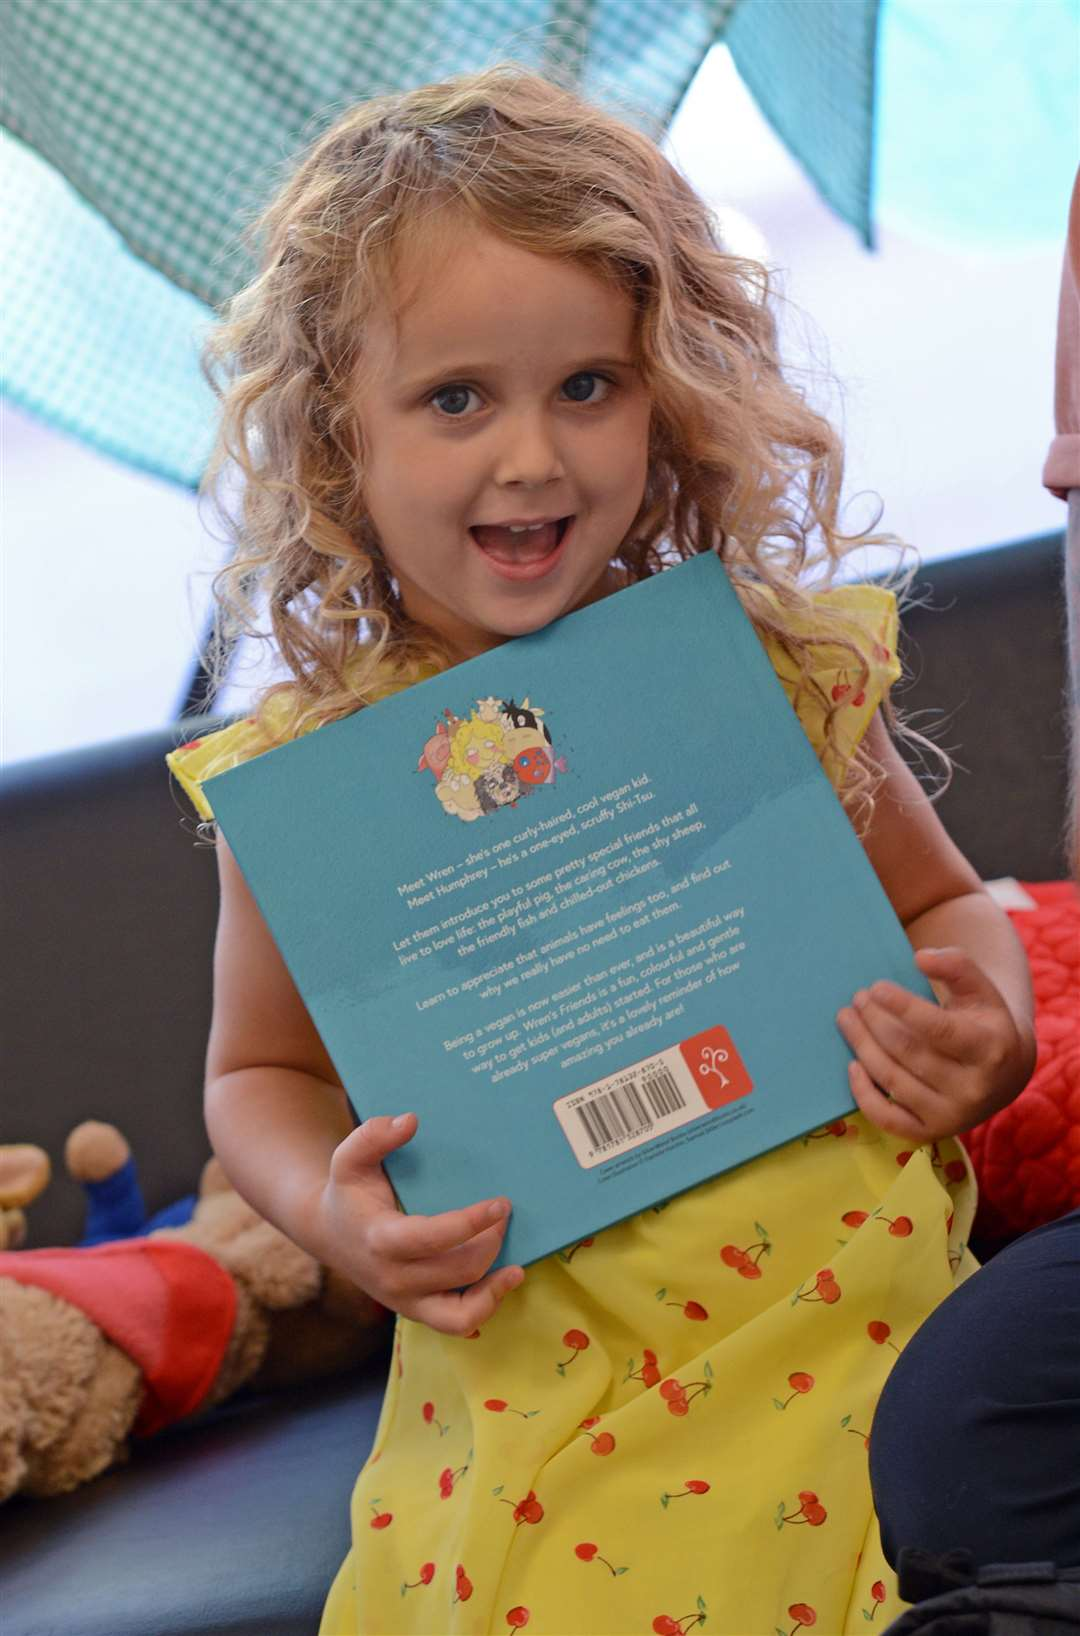 Four-year-old Wren-Ophelia Claydon with the picture book inspired by her, Wren's Friends: A Fun Vegan Adventure Picture: Vikki Lince (15625284)